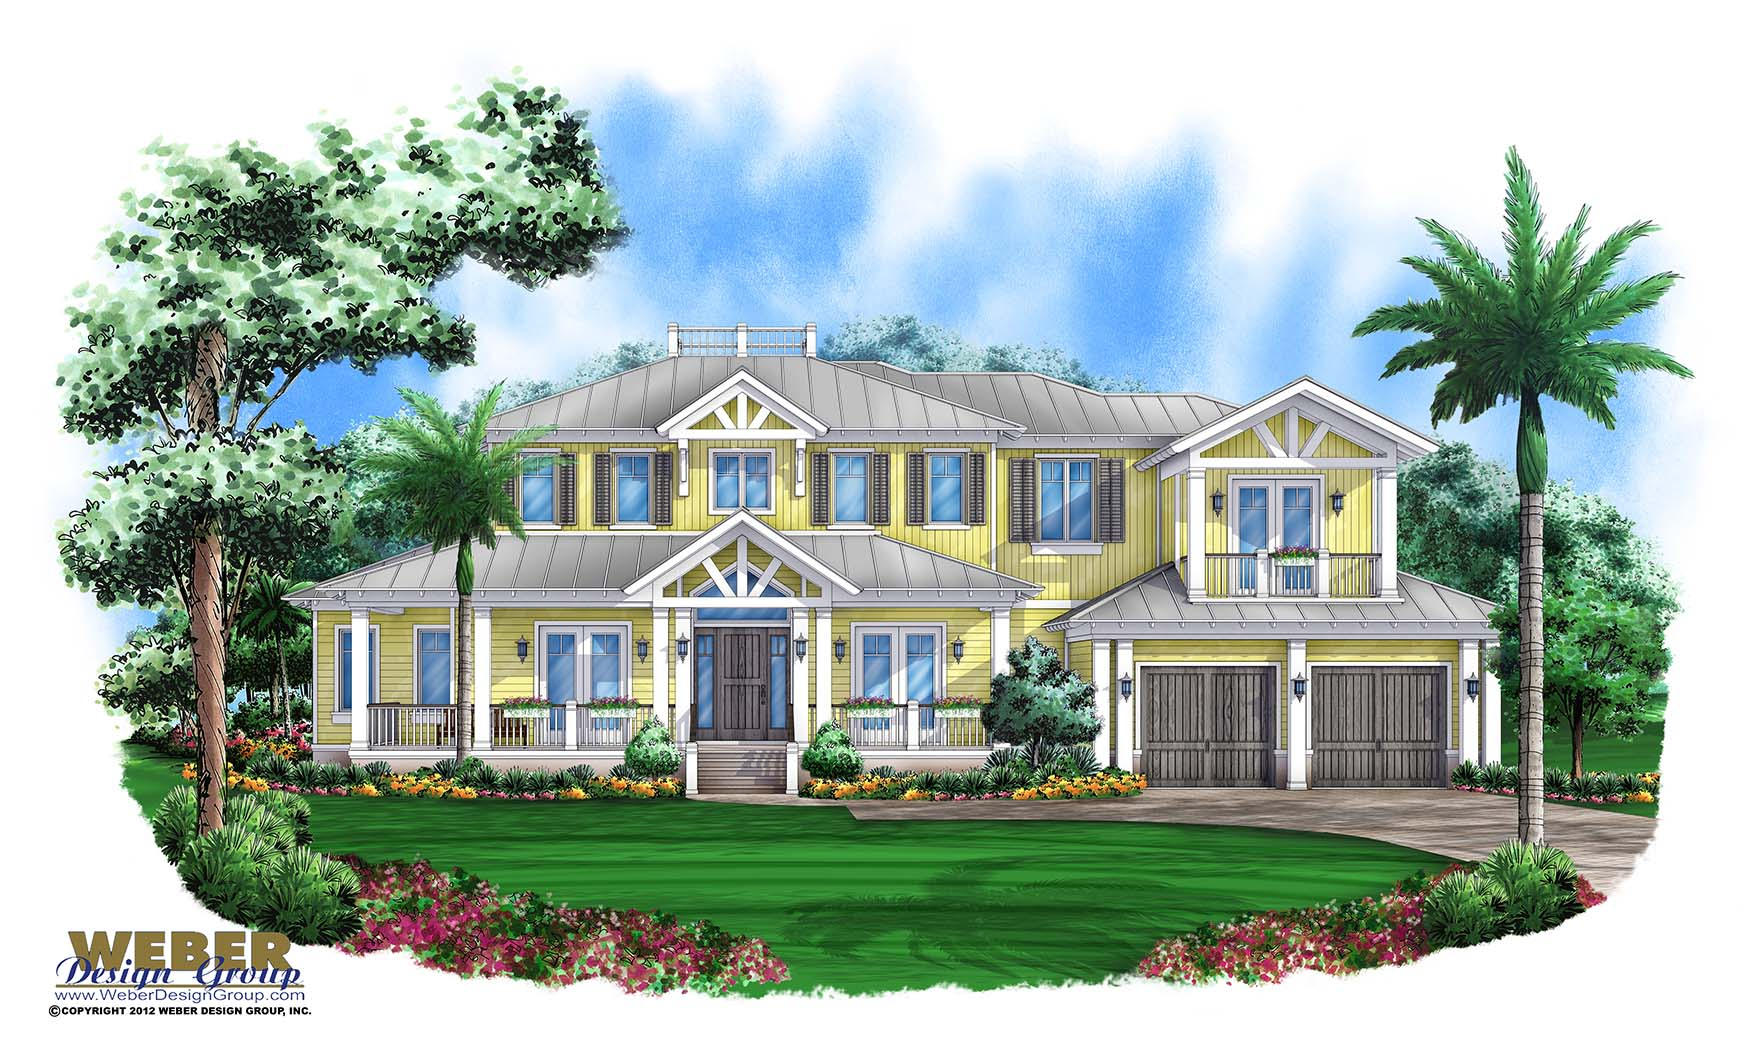 Olde florida house plan arbordale house plan weber Florida style home plans